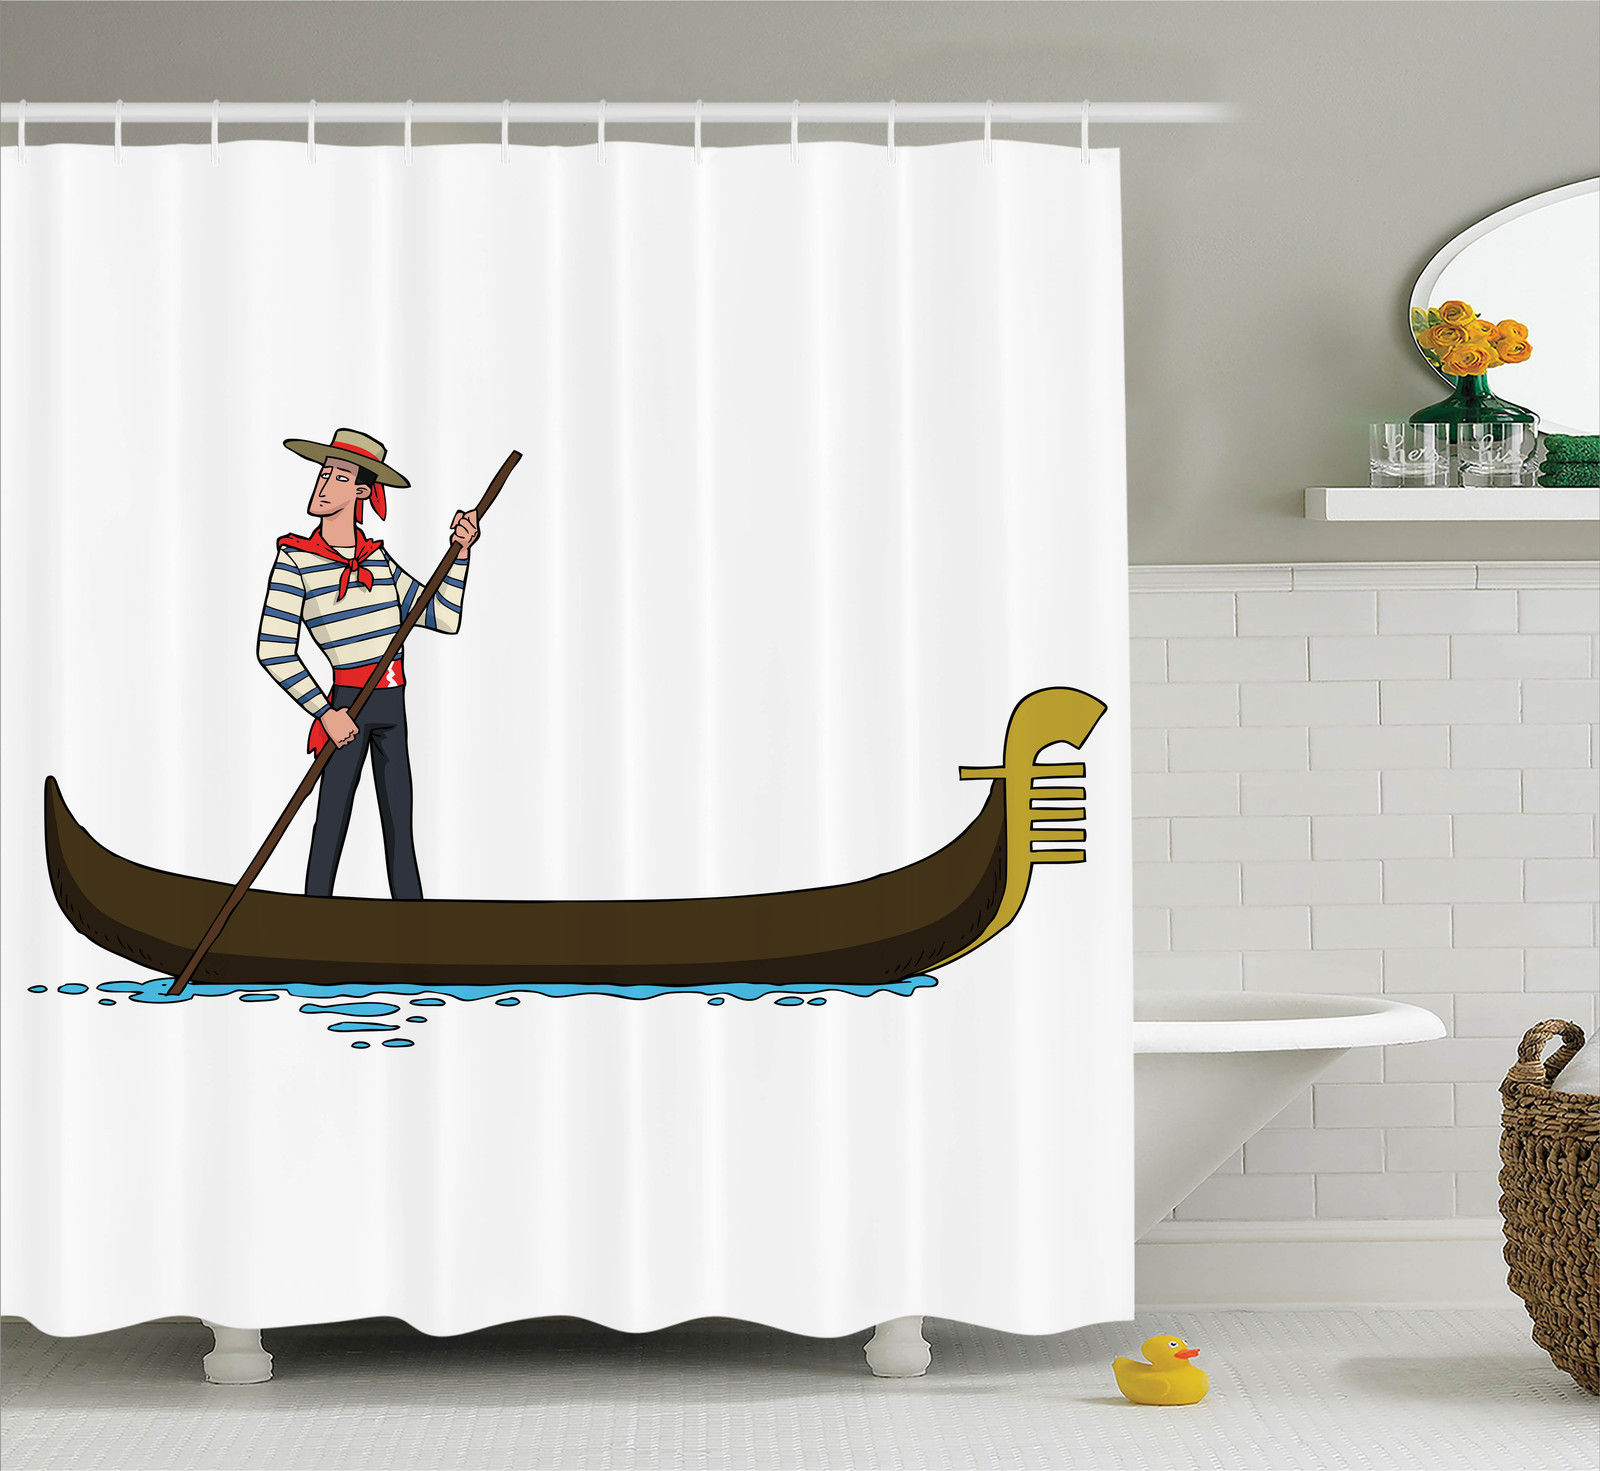 Cartoon Decor Shower Curtain Set, Illustration Of Gondola In Romance City Venice European Symbol Of Love Italian Decor, Bathroom Accessories, 69W X 70L Inches, By Ambesonne